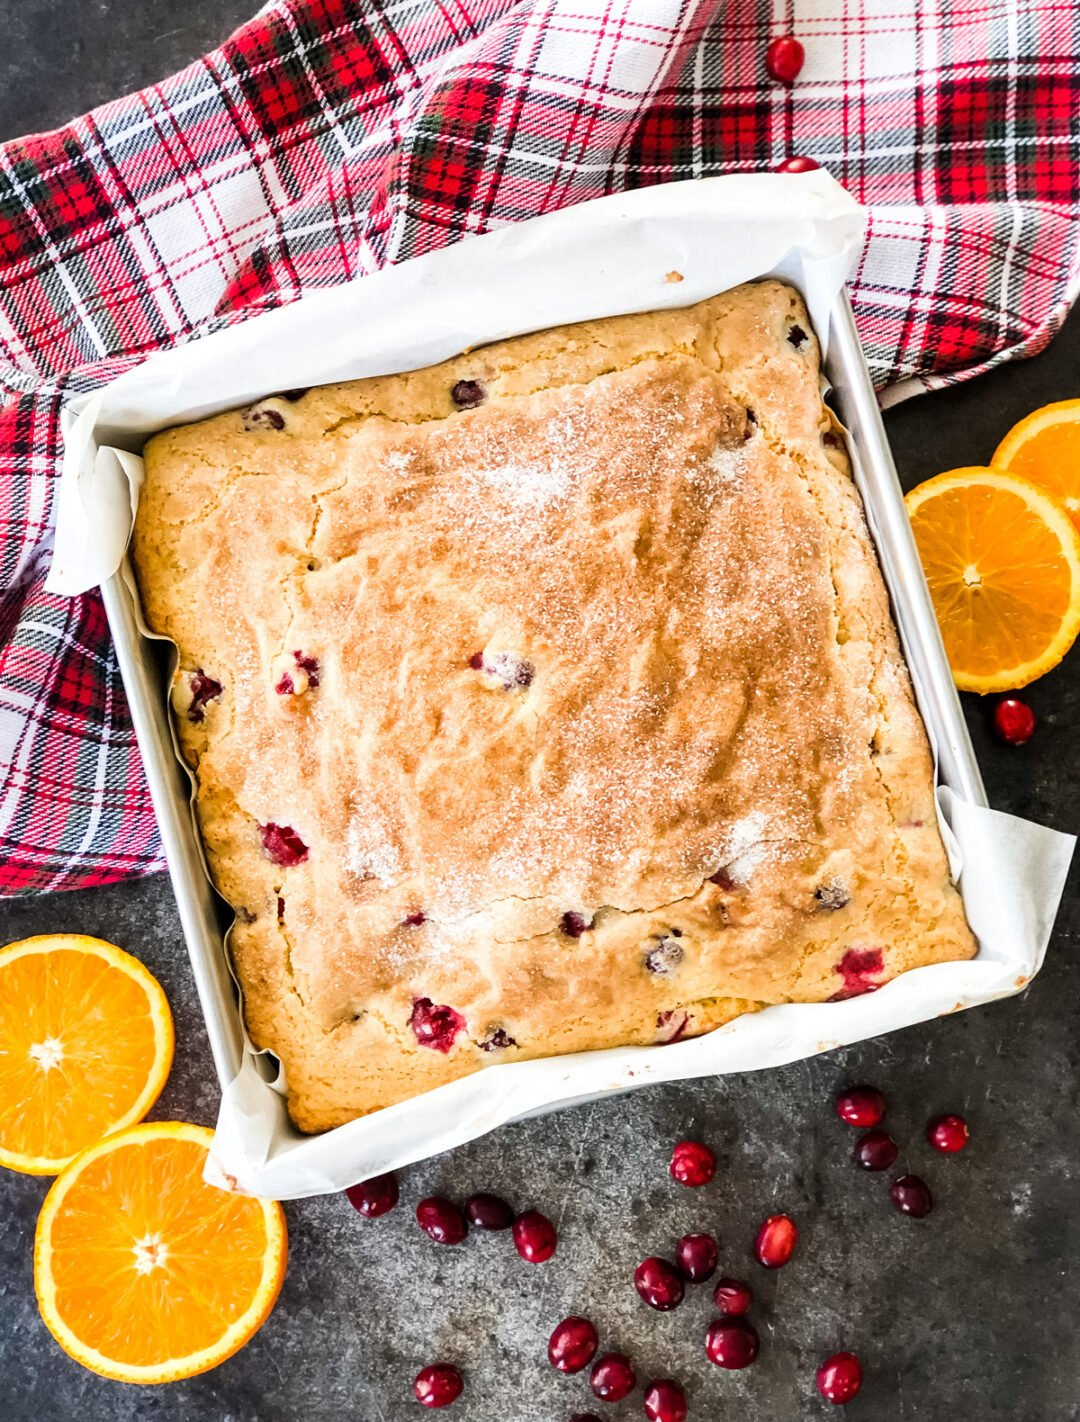 A top down view of a Cranberry Orange Buttermilk Breakfast Cake on a table with a plaid napkin and orange slices